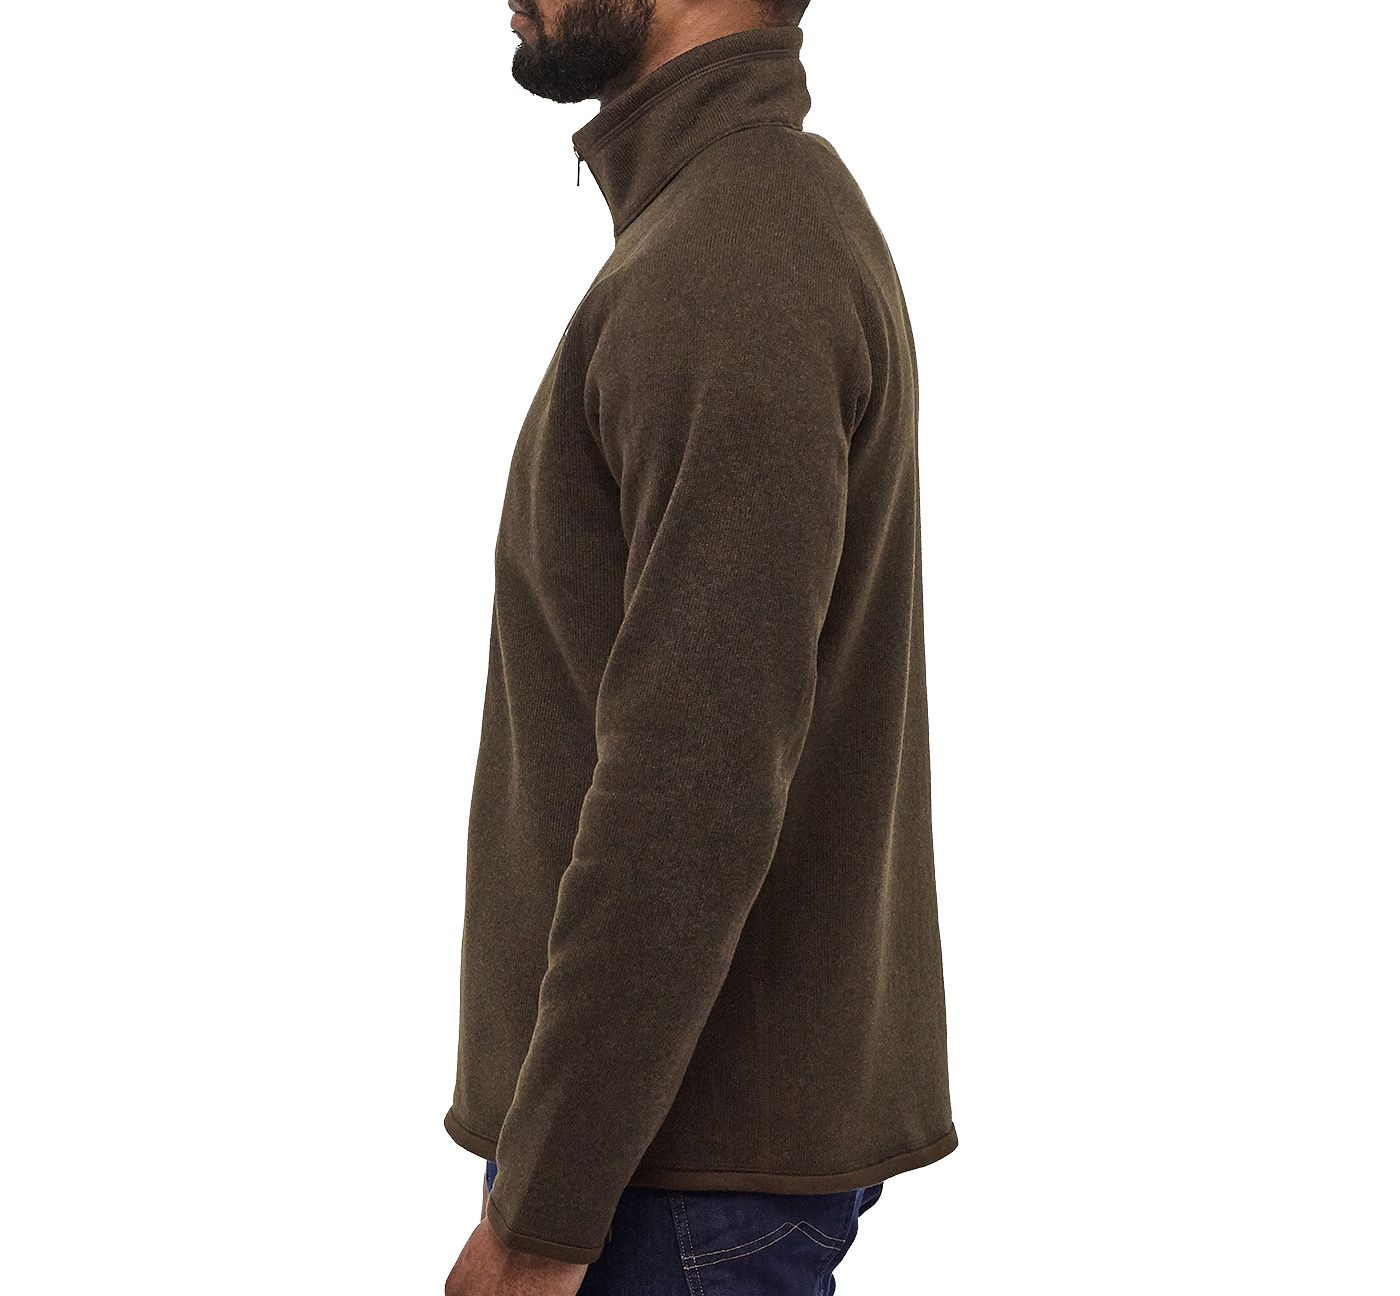 Patagonia Men's Better Sweater 1/4 Zip Pullover (Regular and Big & Tall) 4